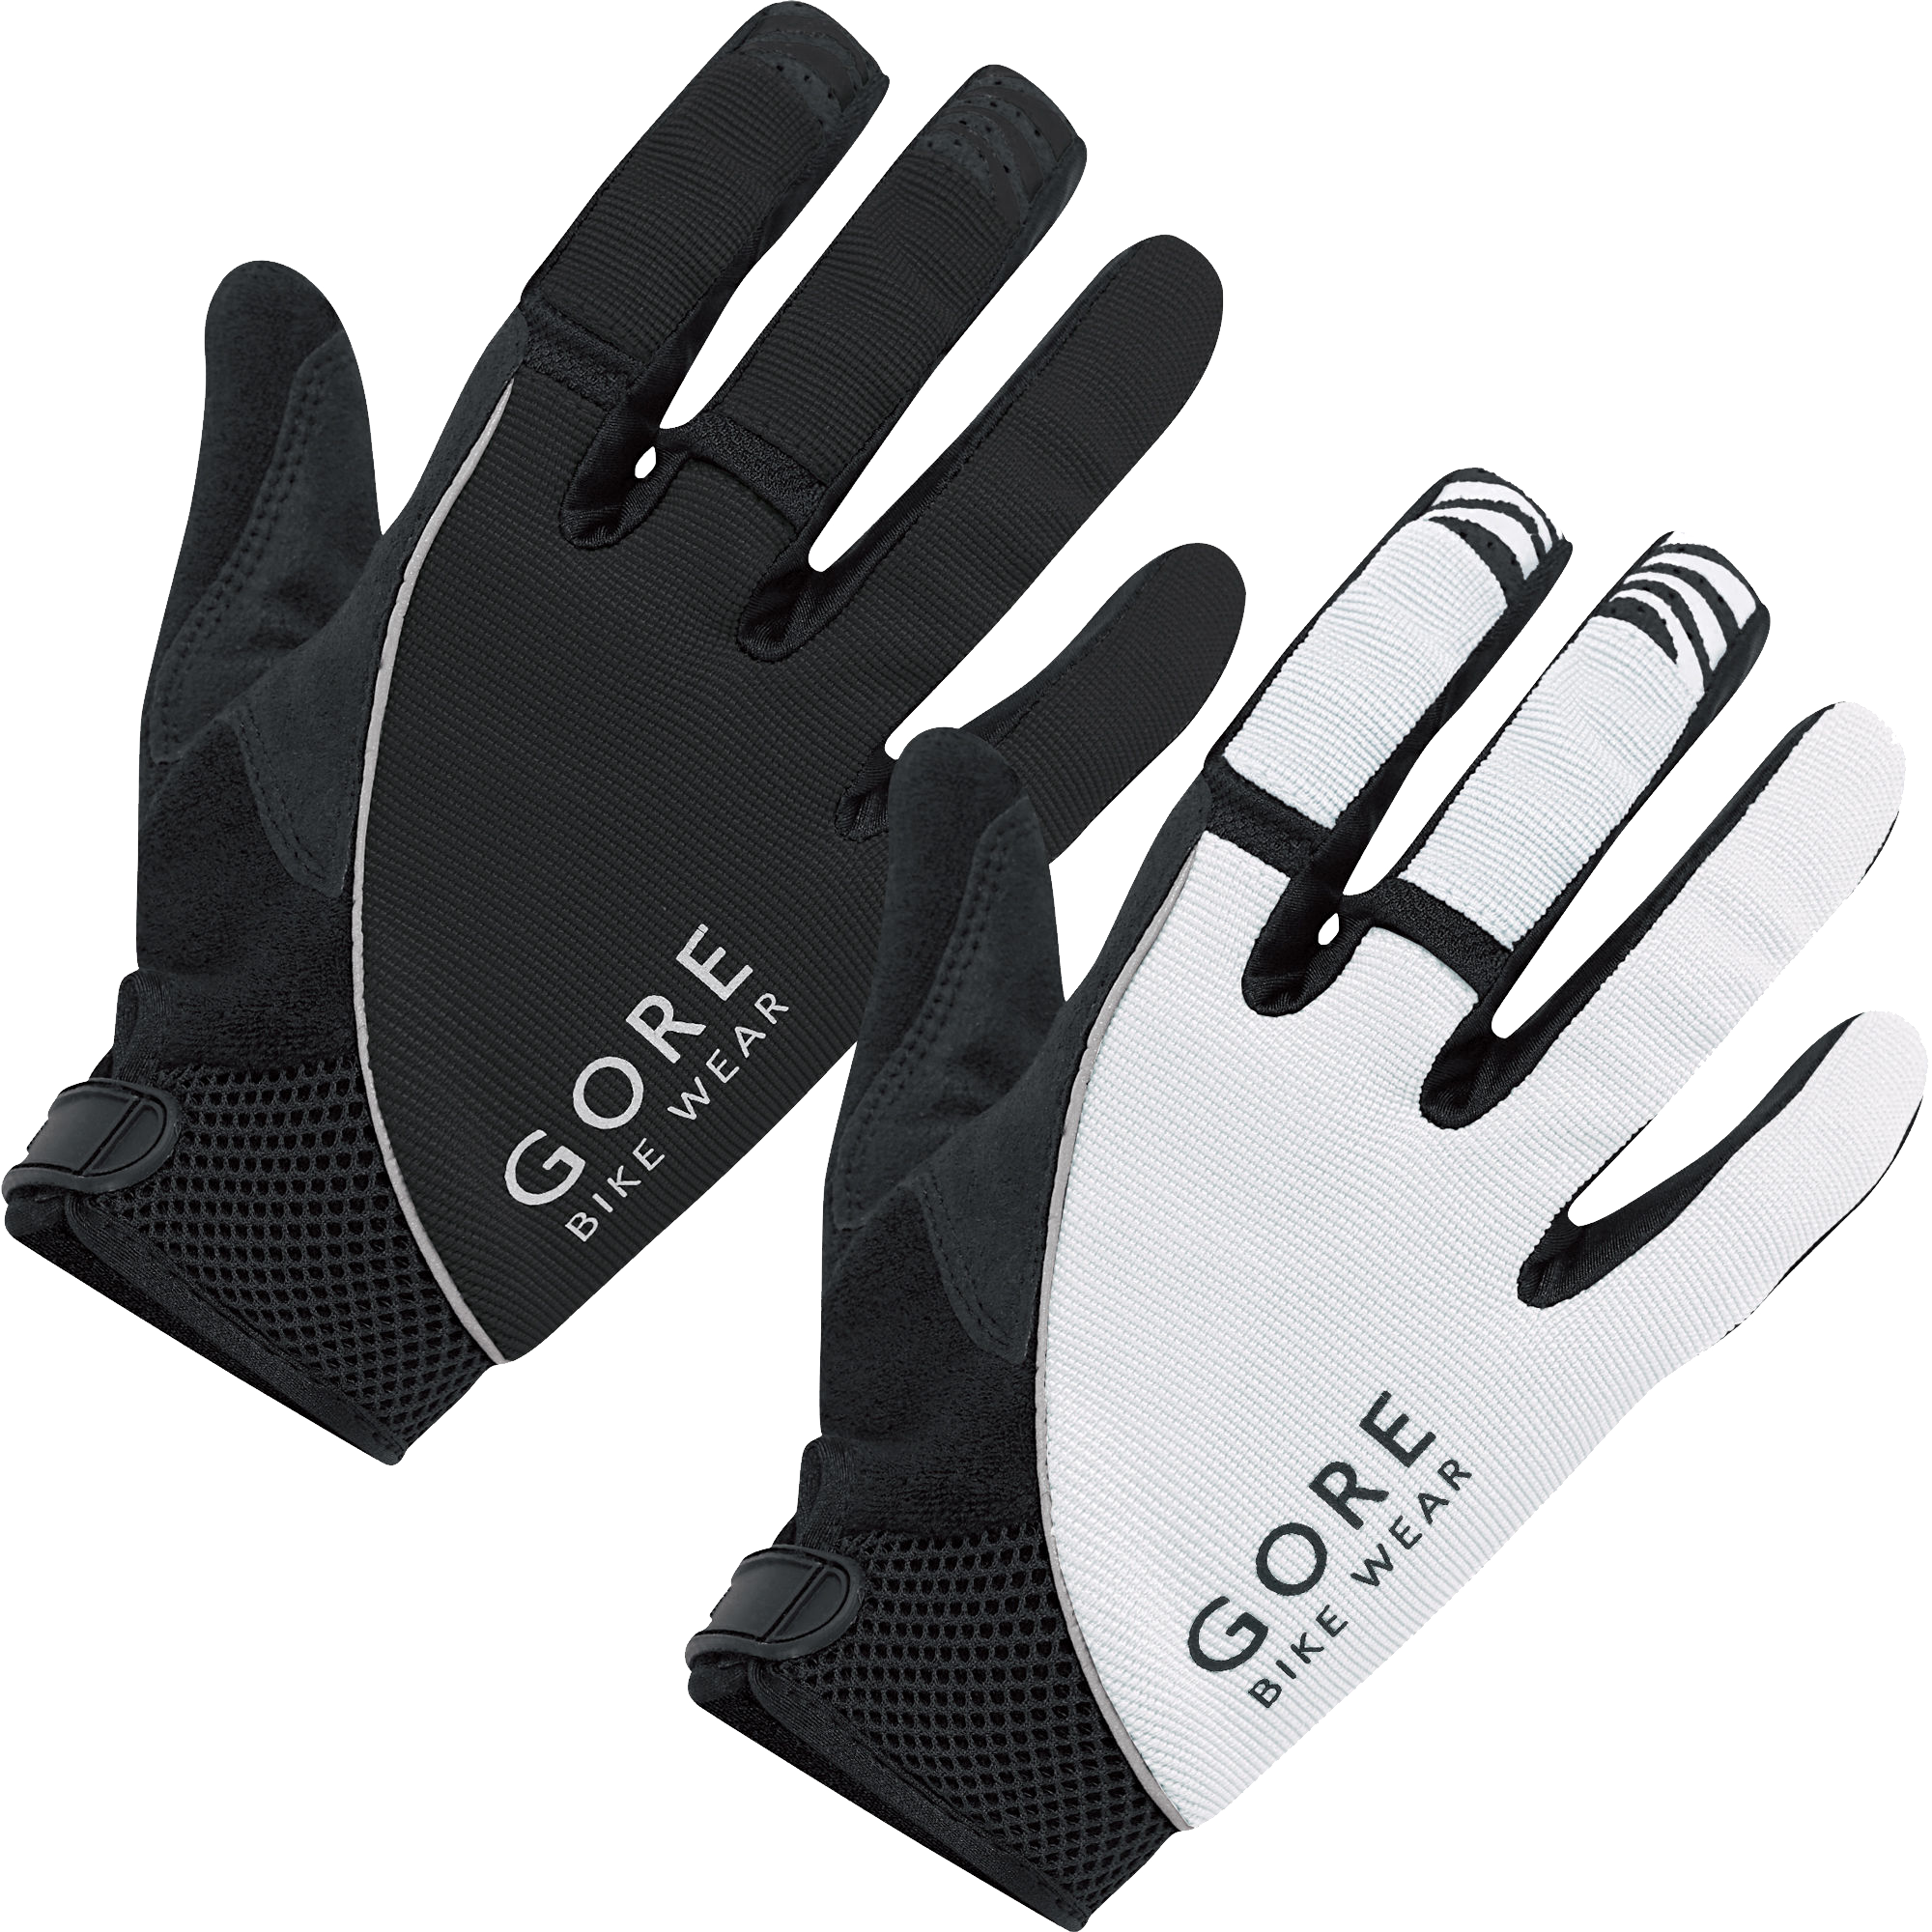 Glove vector golf. Gloves png clipart web